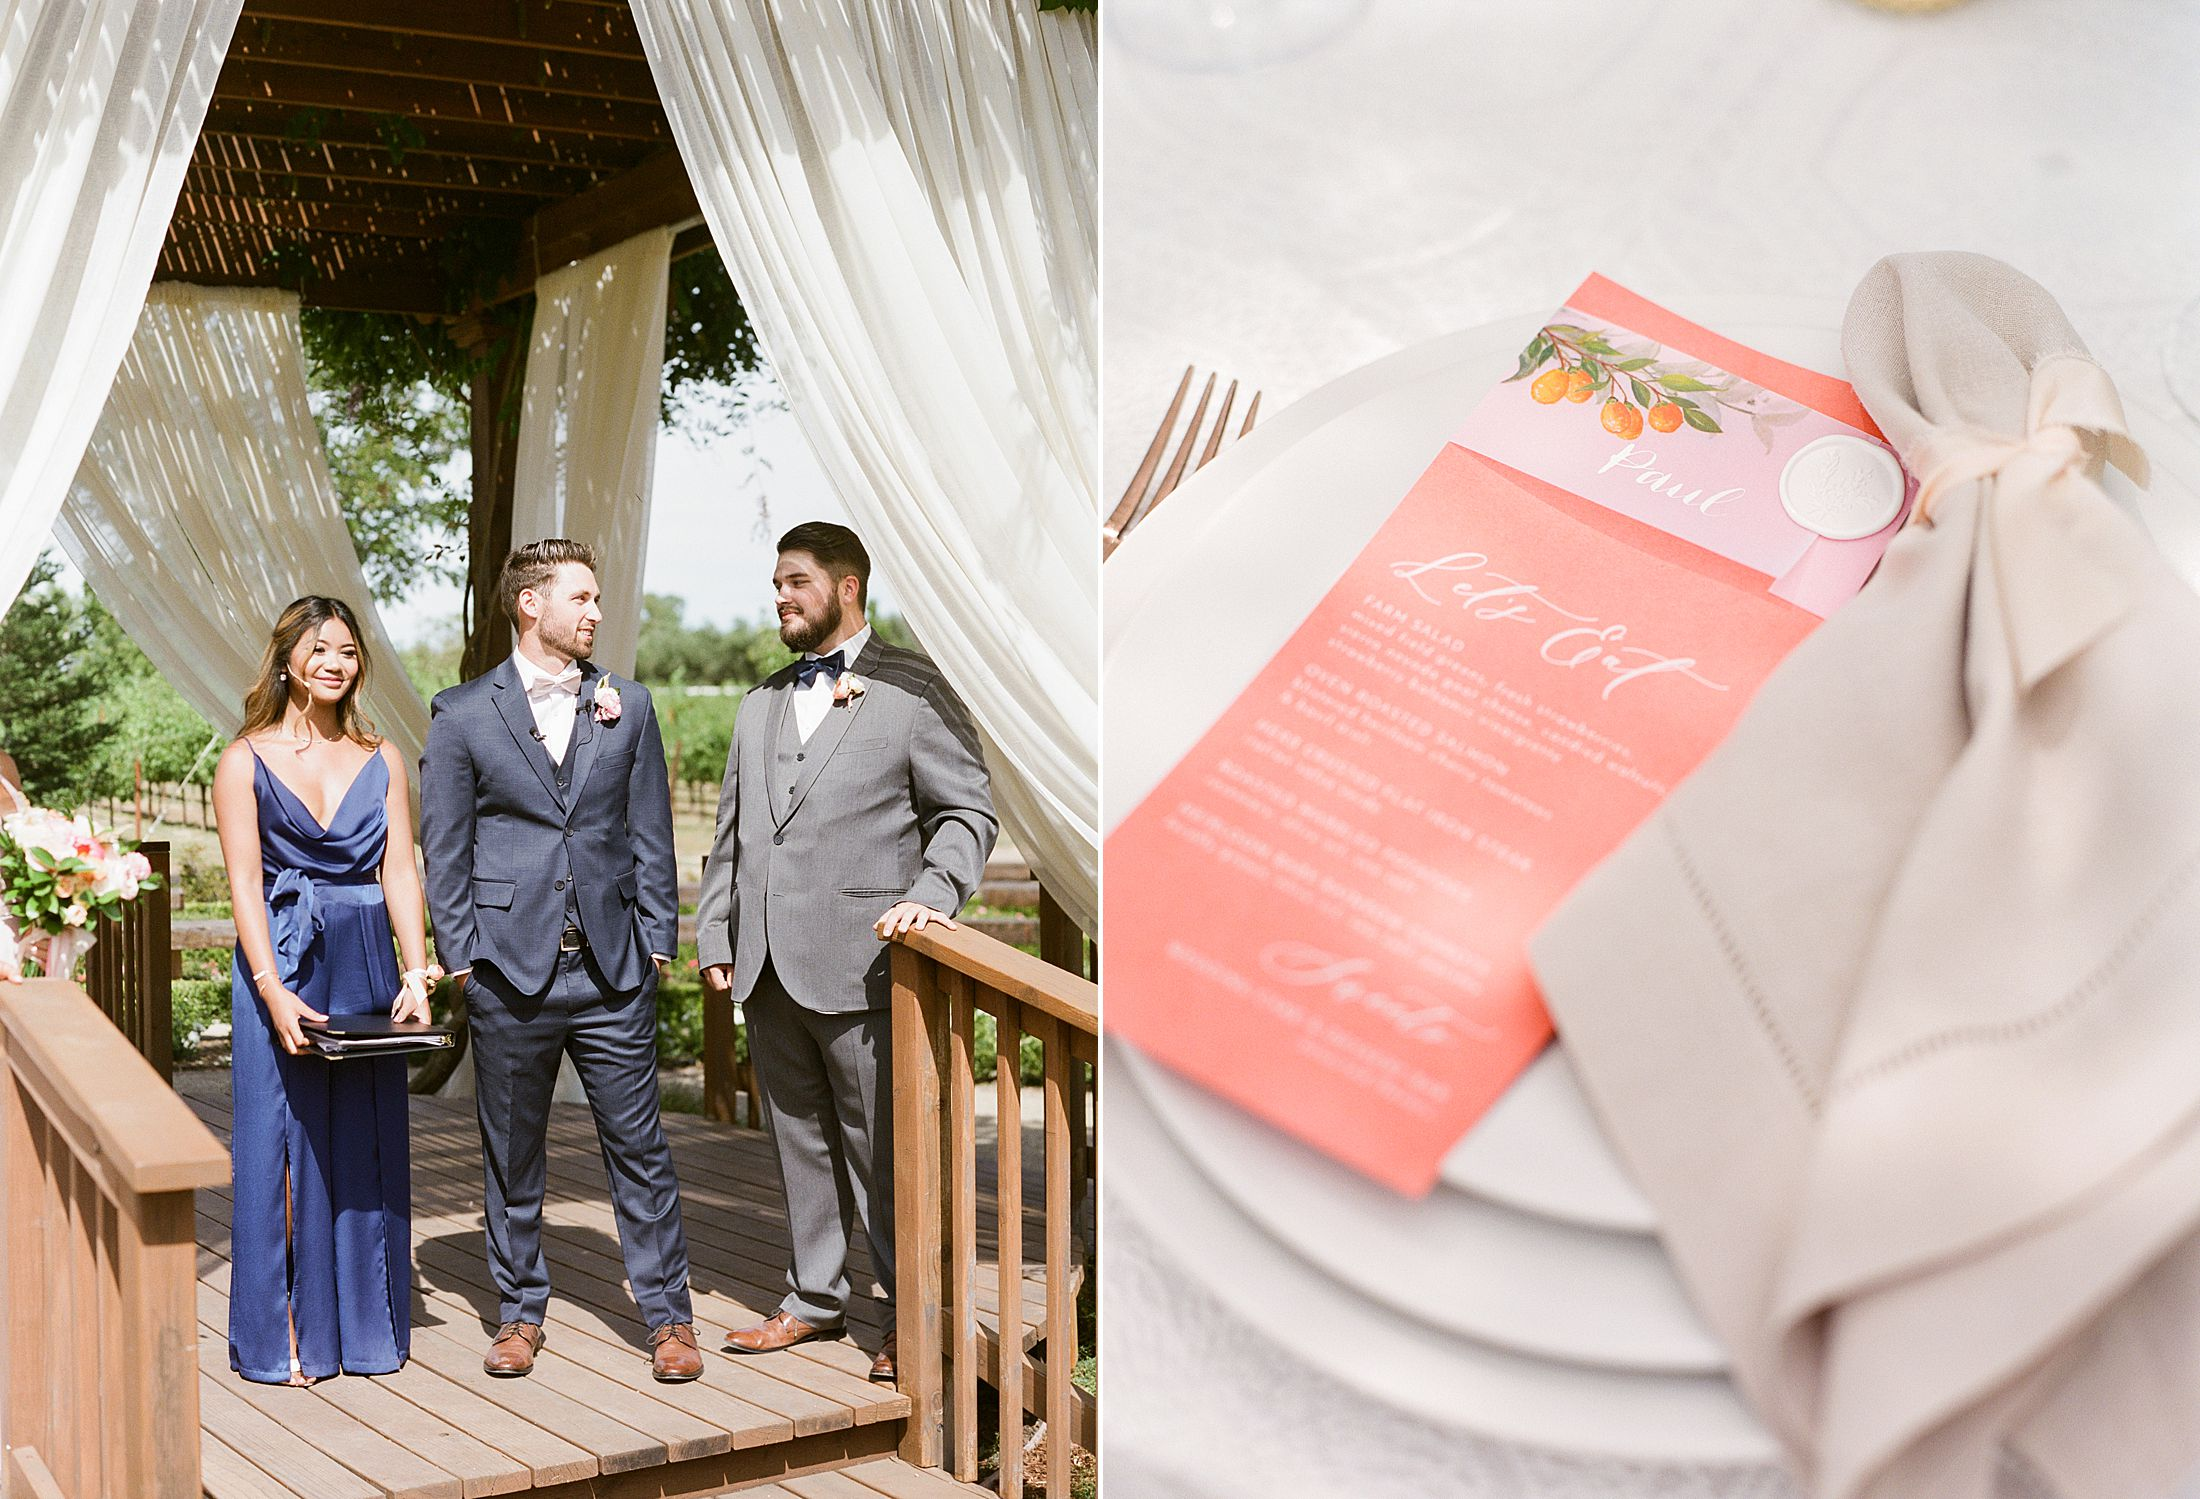 Wolfe Heights Wedding - Bri and Dylan - Jenn Robirds Events - Carats and Cake Real Wedding - Ashley Baumgartner - Sacramento Wedding Photography_0049.jpg